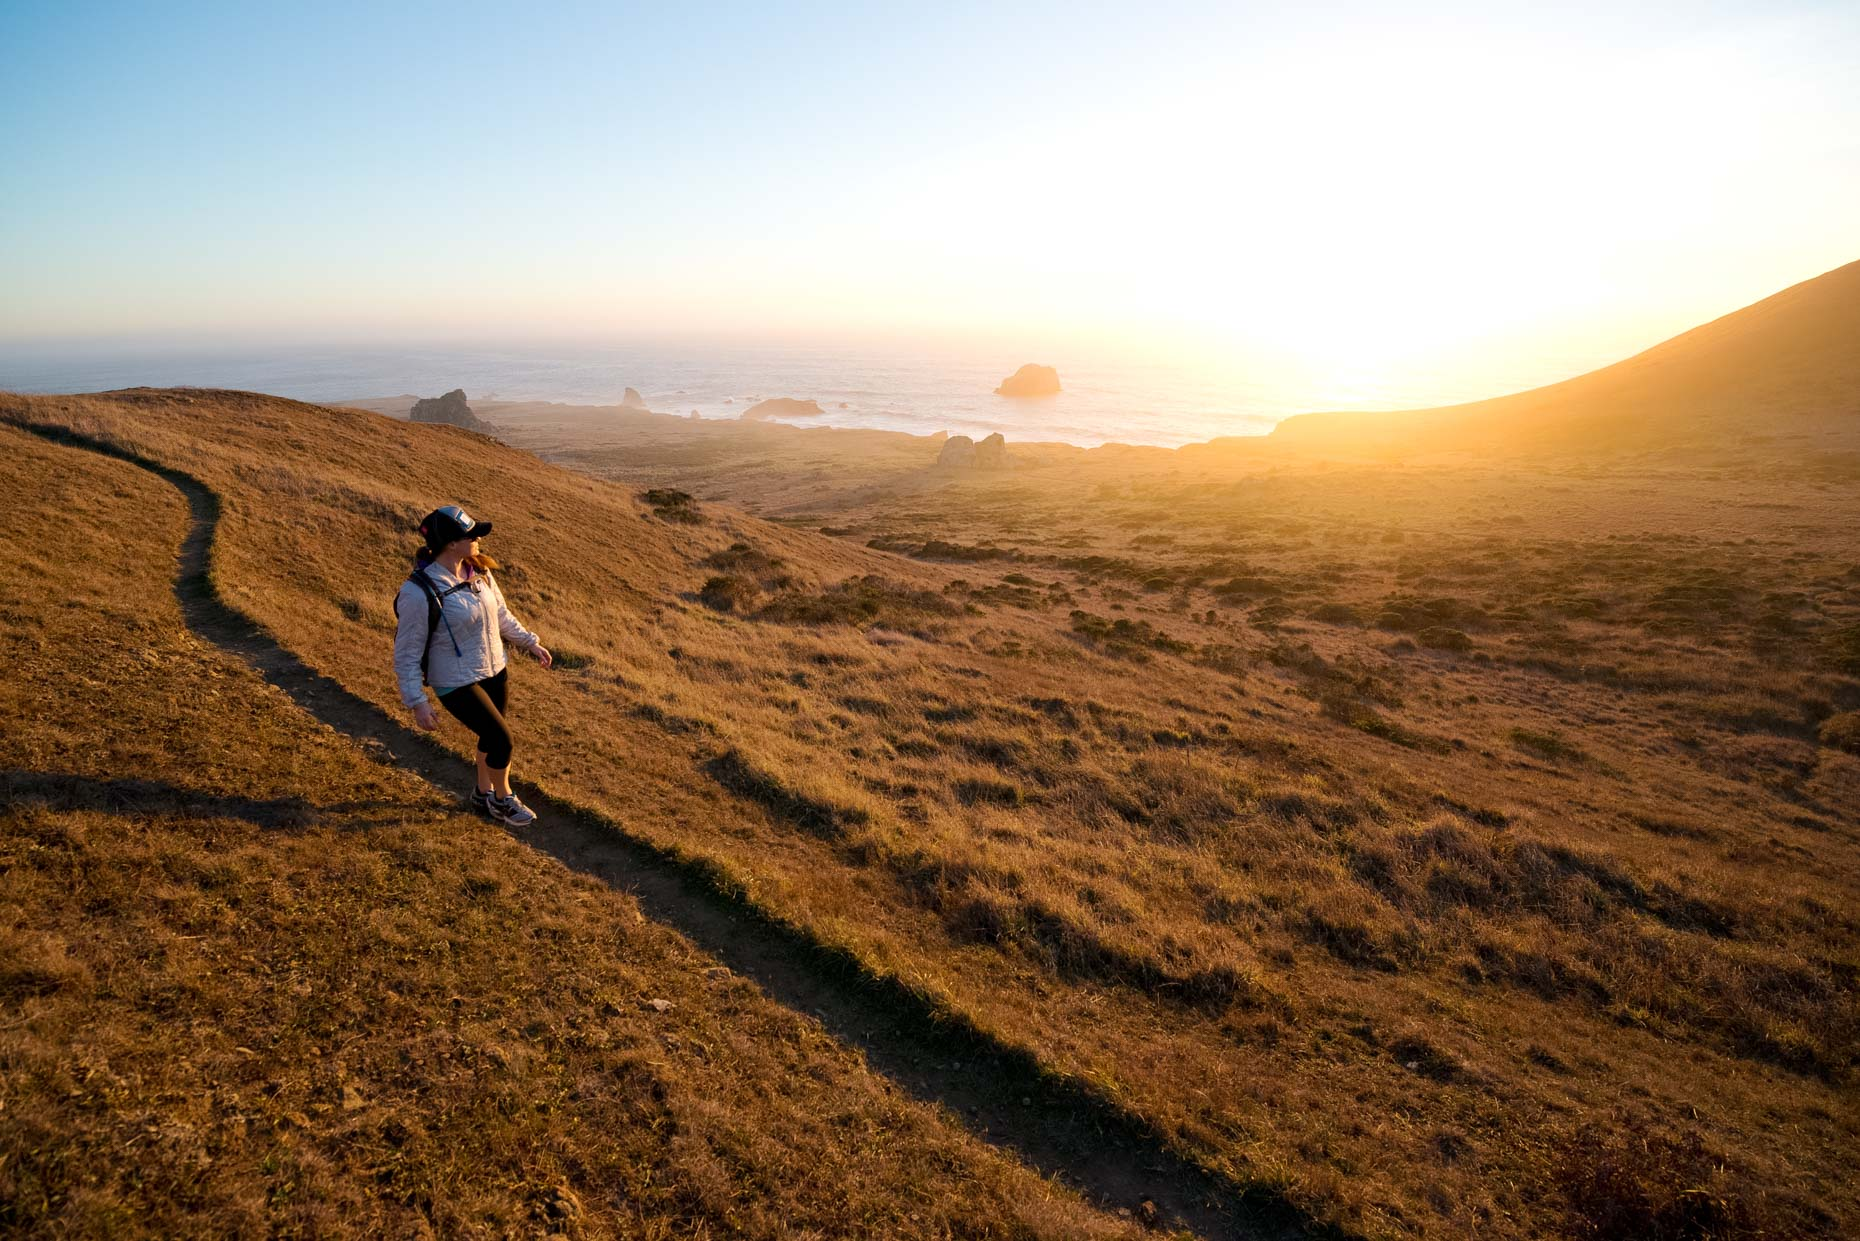 Hiking The Kortum Trail At Sunset - Sonoma Coast State Park, California